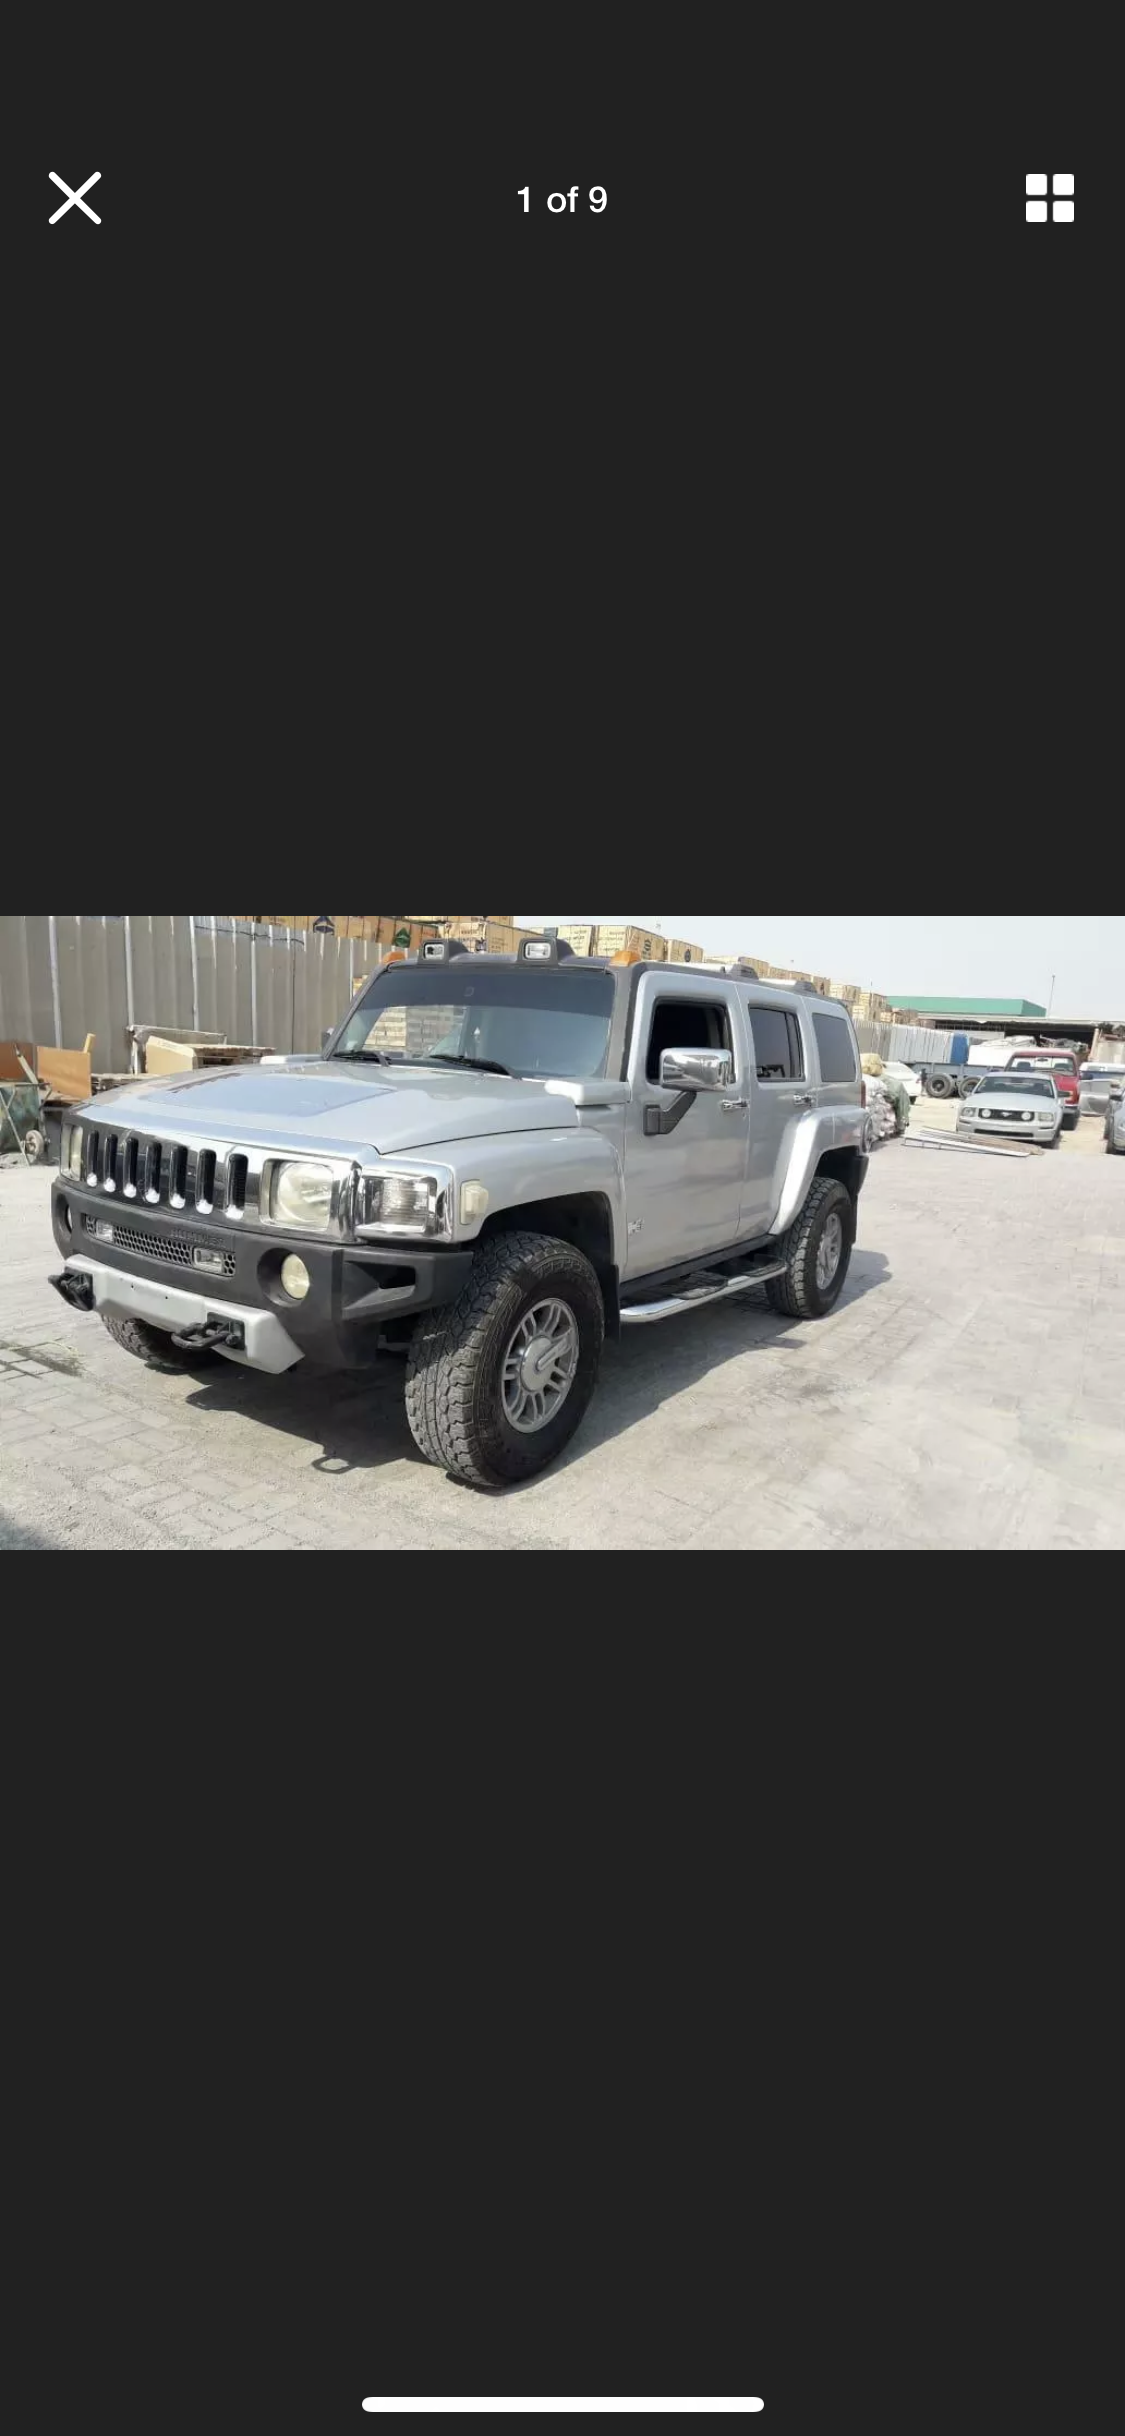 2008 HUMMER H3 3.5 LEFT HAND DRIVE SILVER LHD FRESH IMPORT A For Sale (picture 1 of 6)